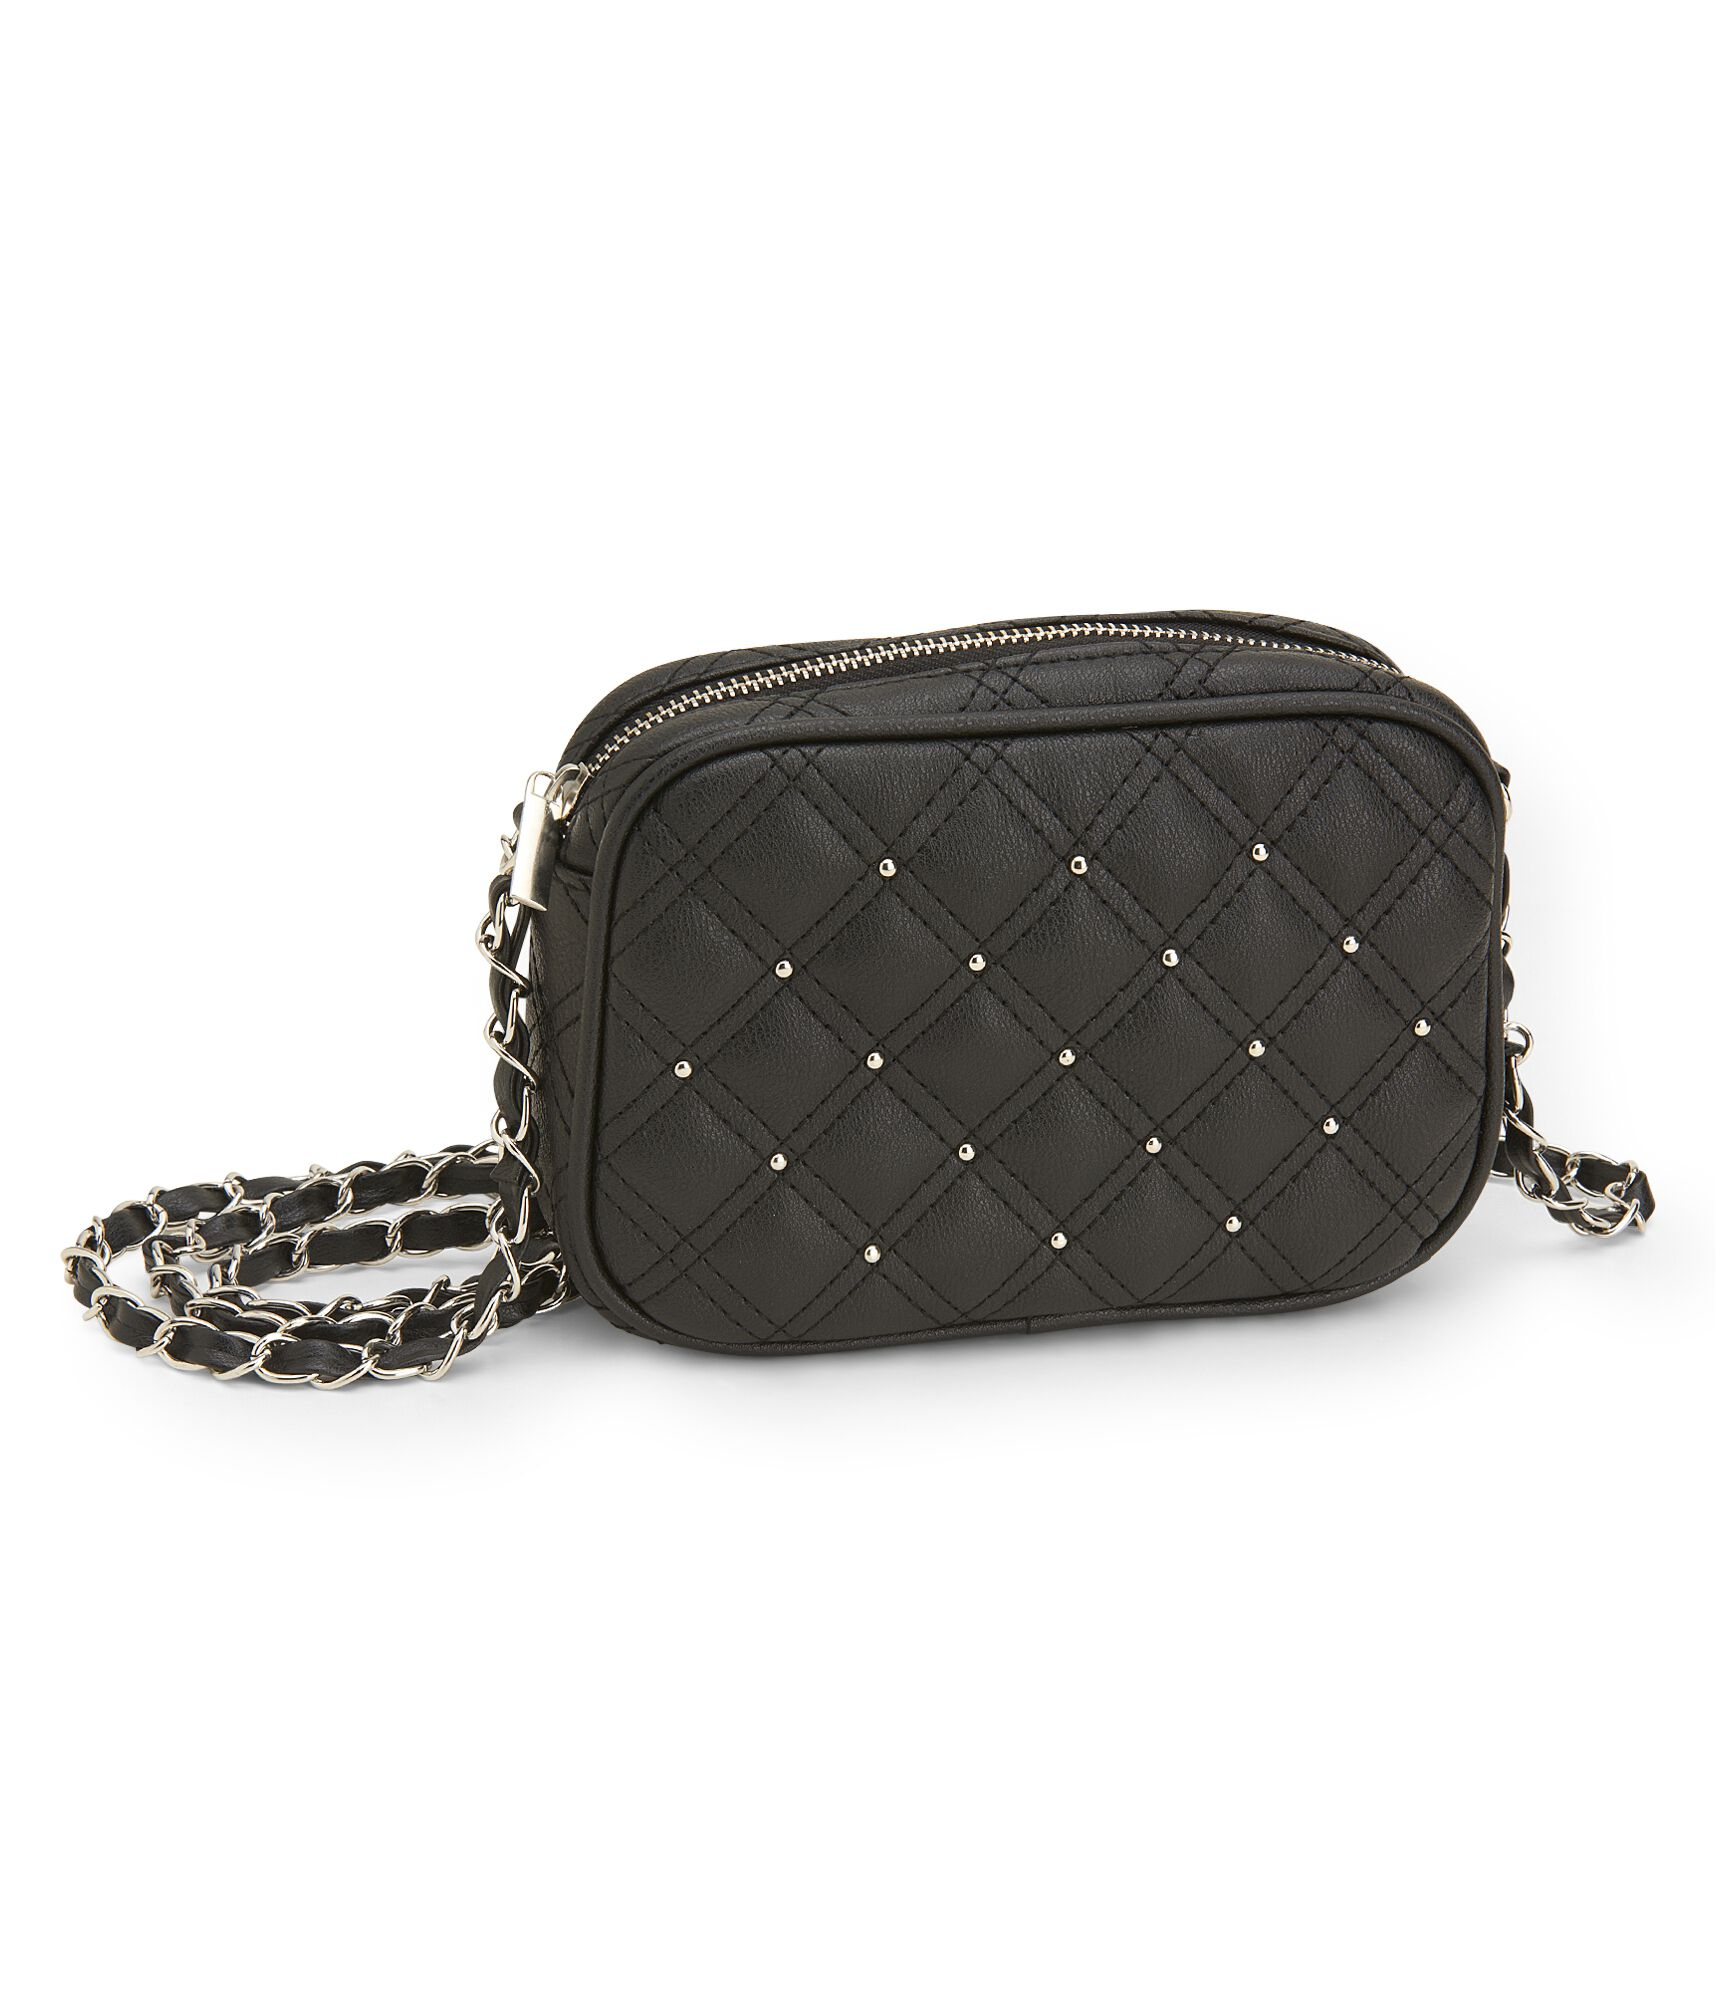 Quilted Crossbody Bag | Aeropostale : quilted crossbody bags - Adamdwight.com